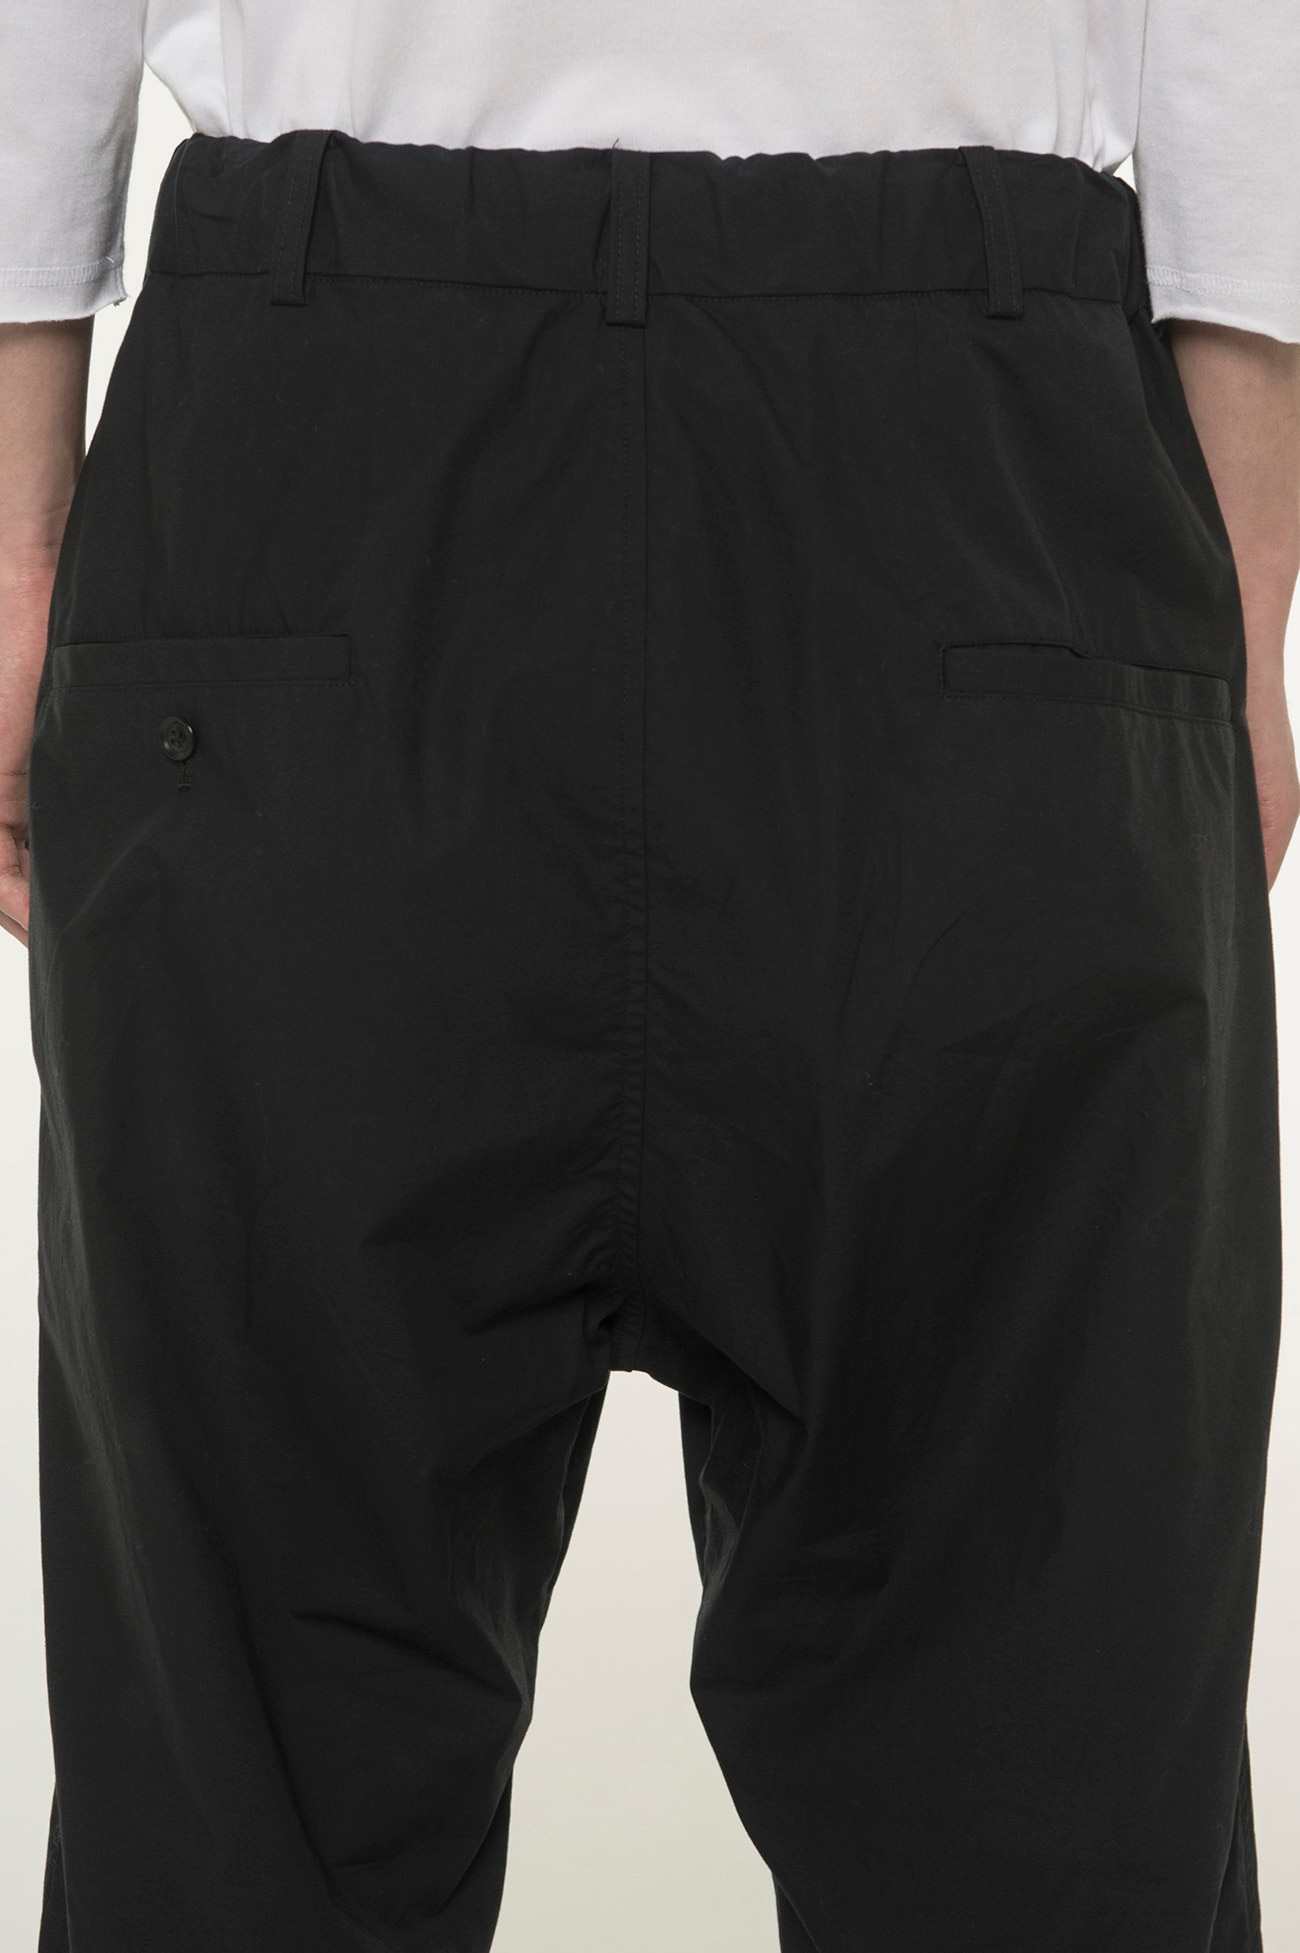 Cotton Type Lighter 6-minute Length Pants